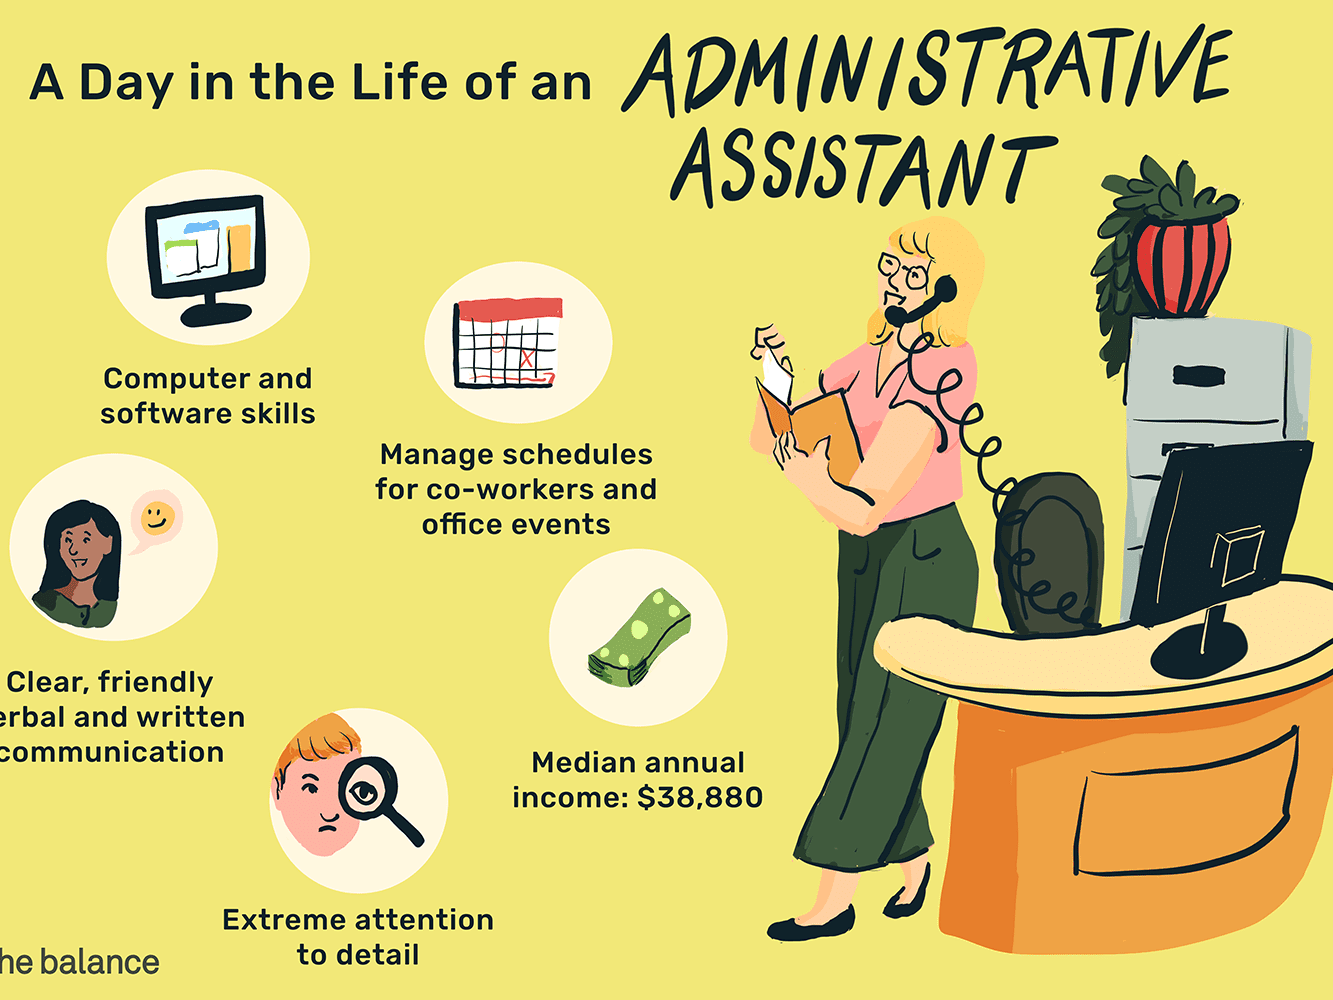 Skills for the Administrative Assistant